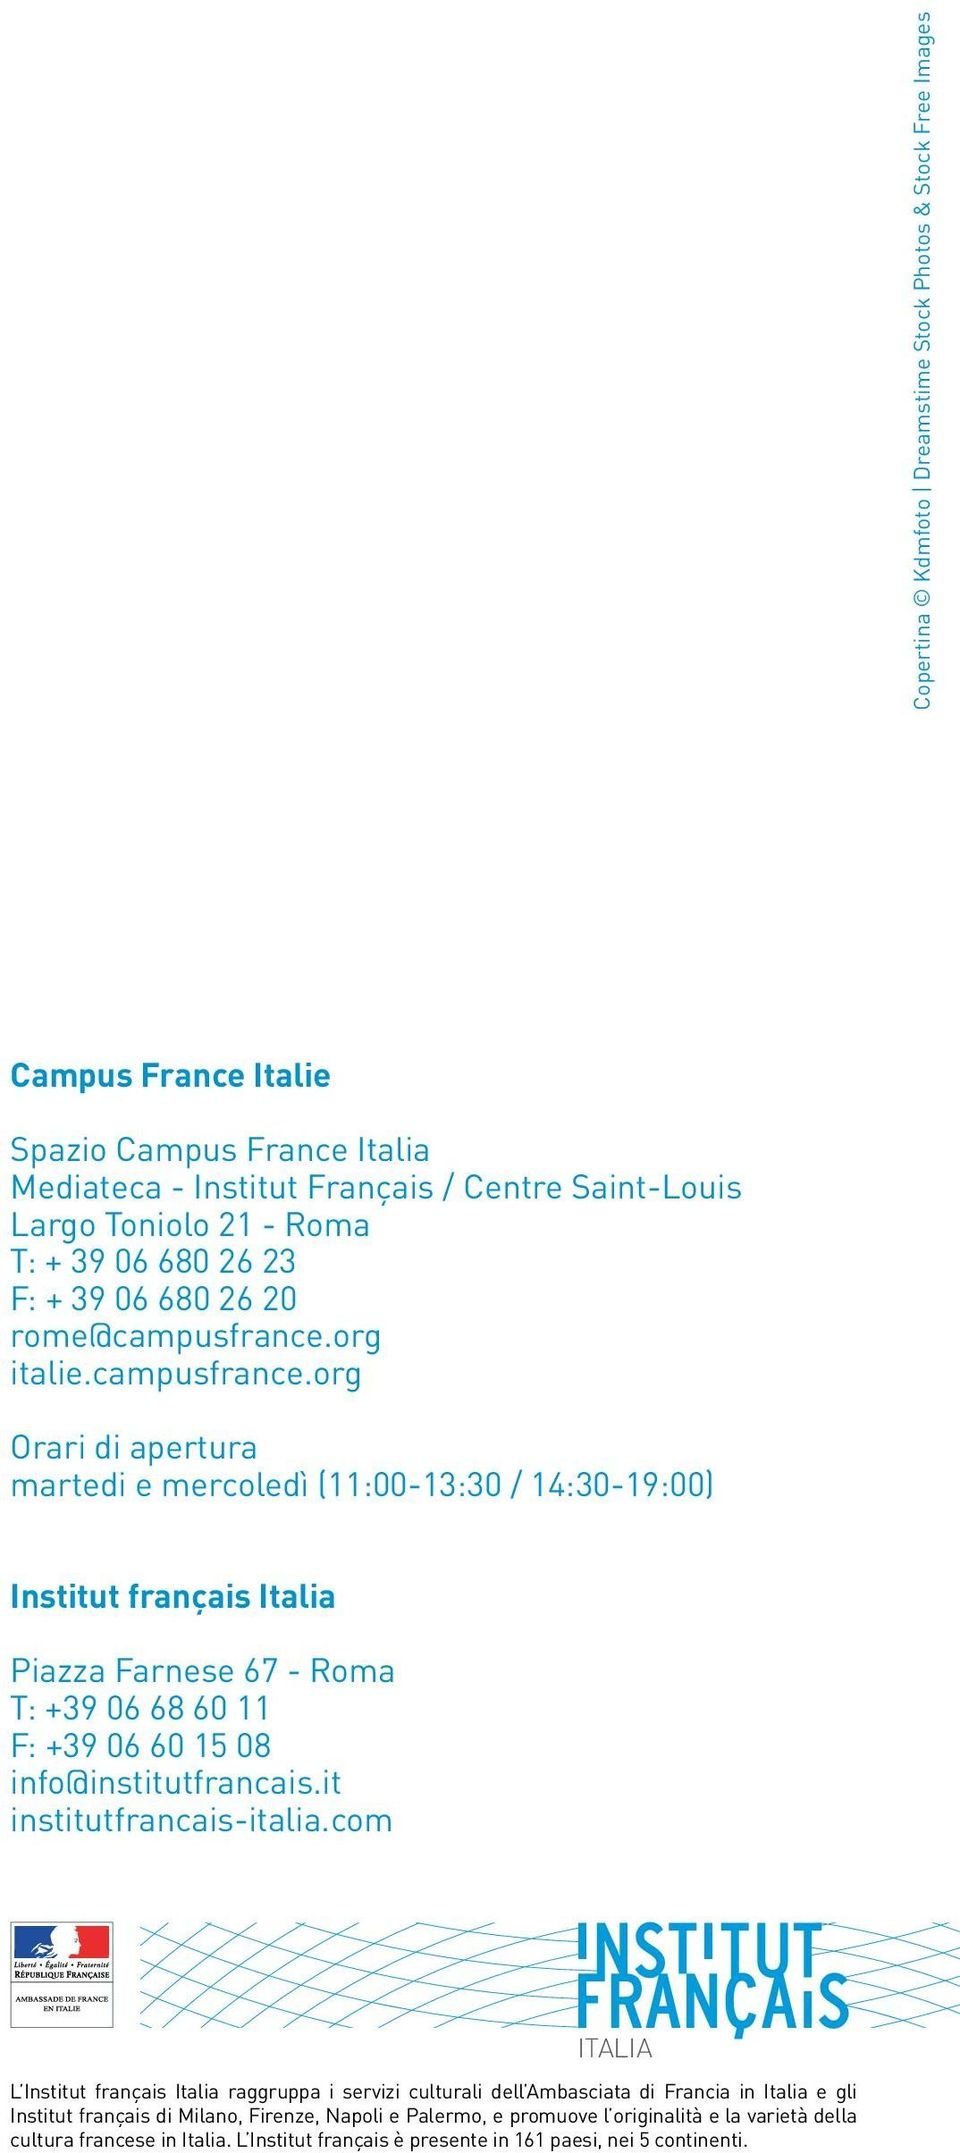 org italie.campusfrance.